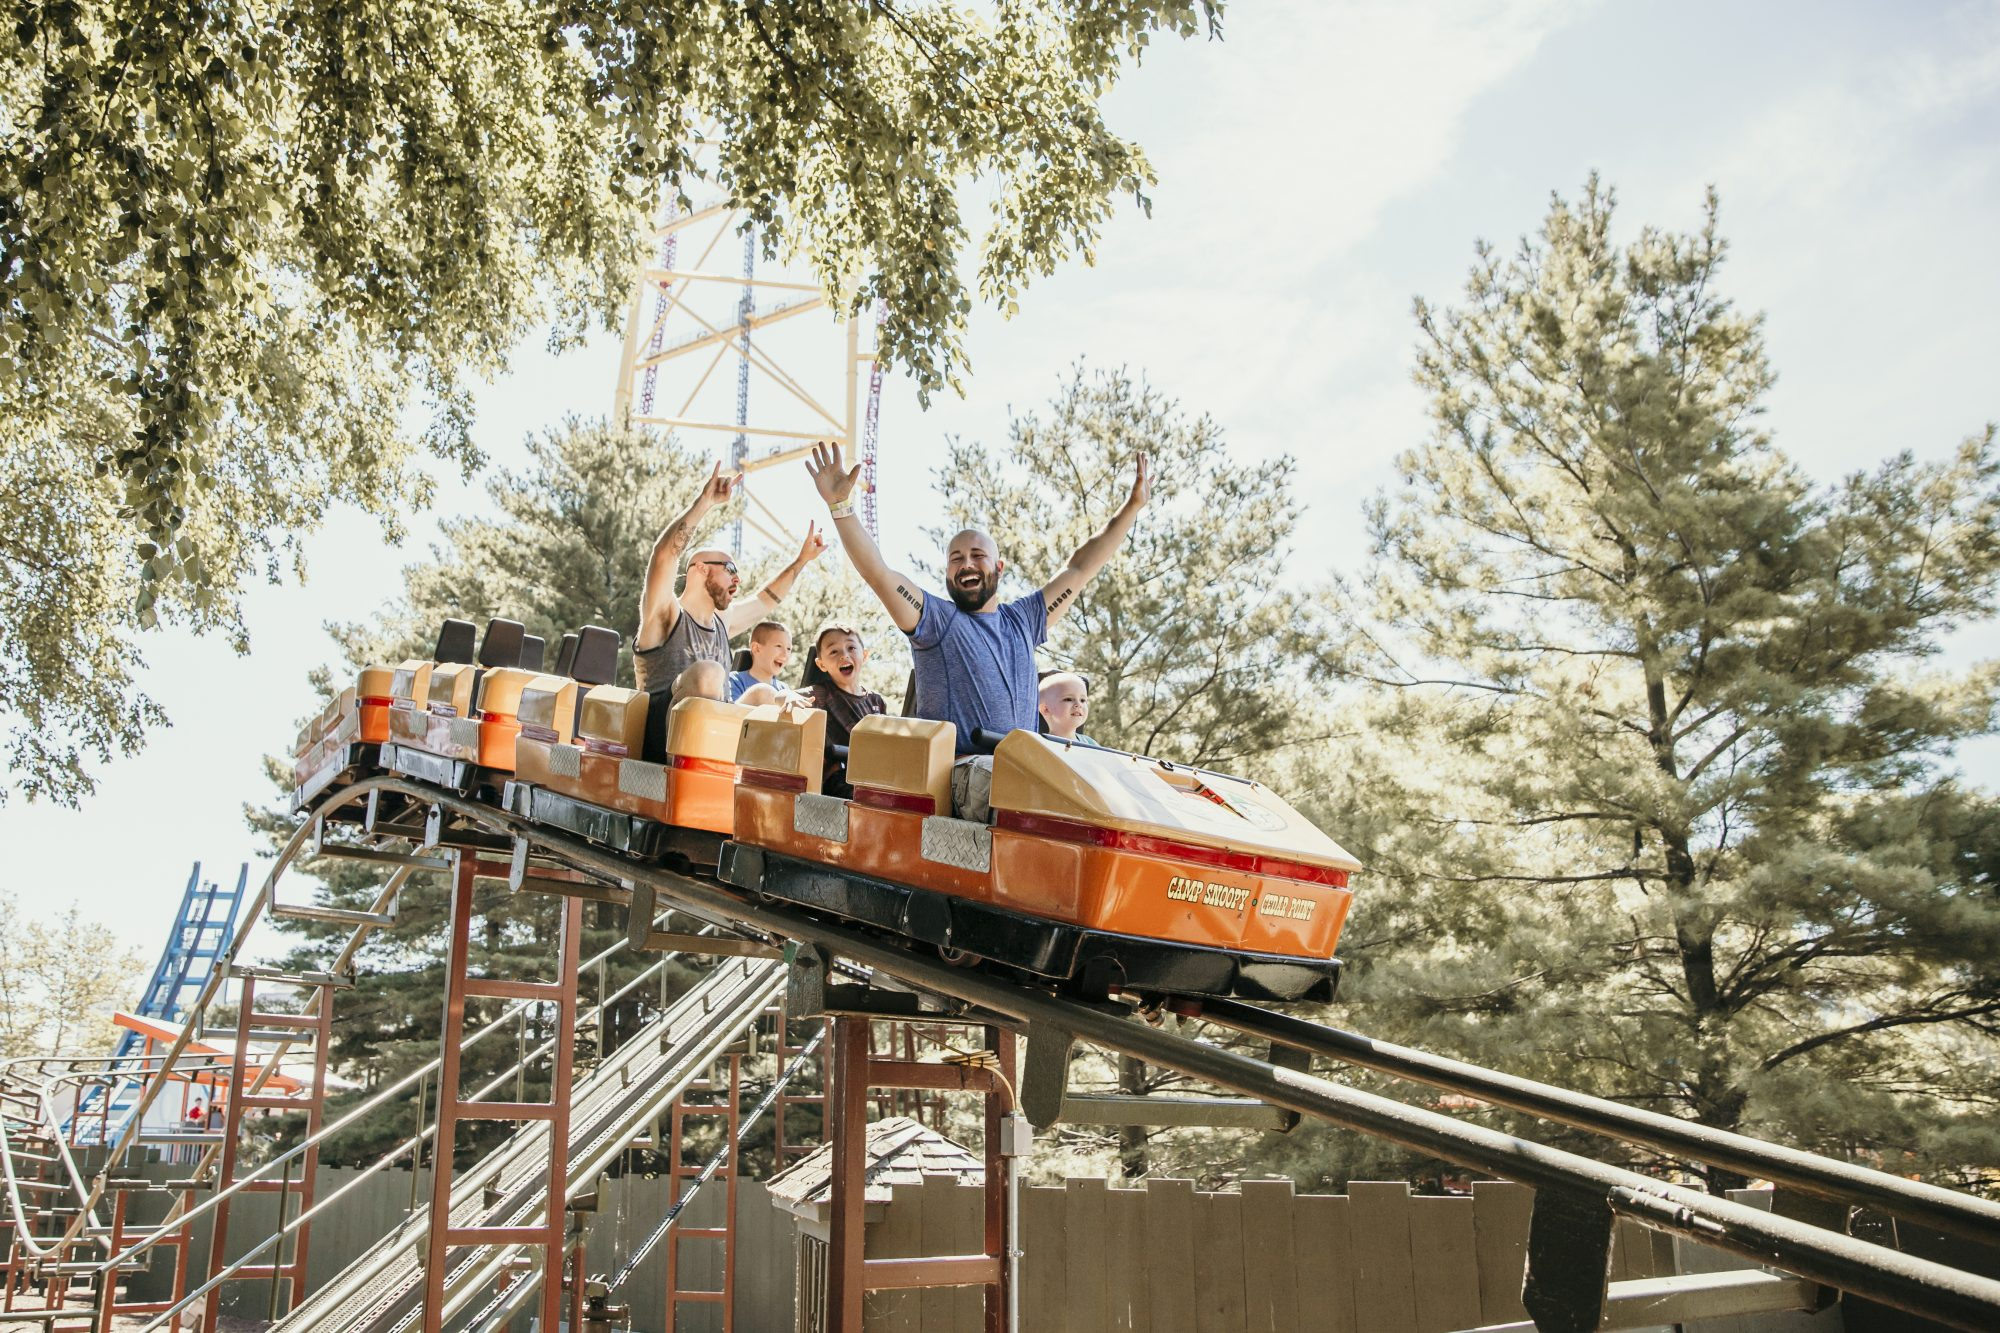 riding a roller coaster together